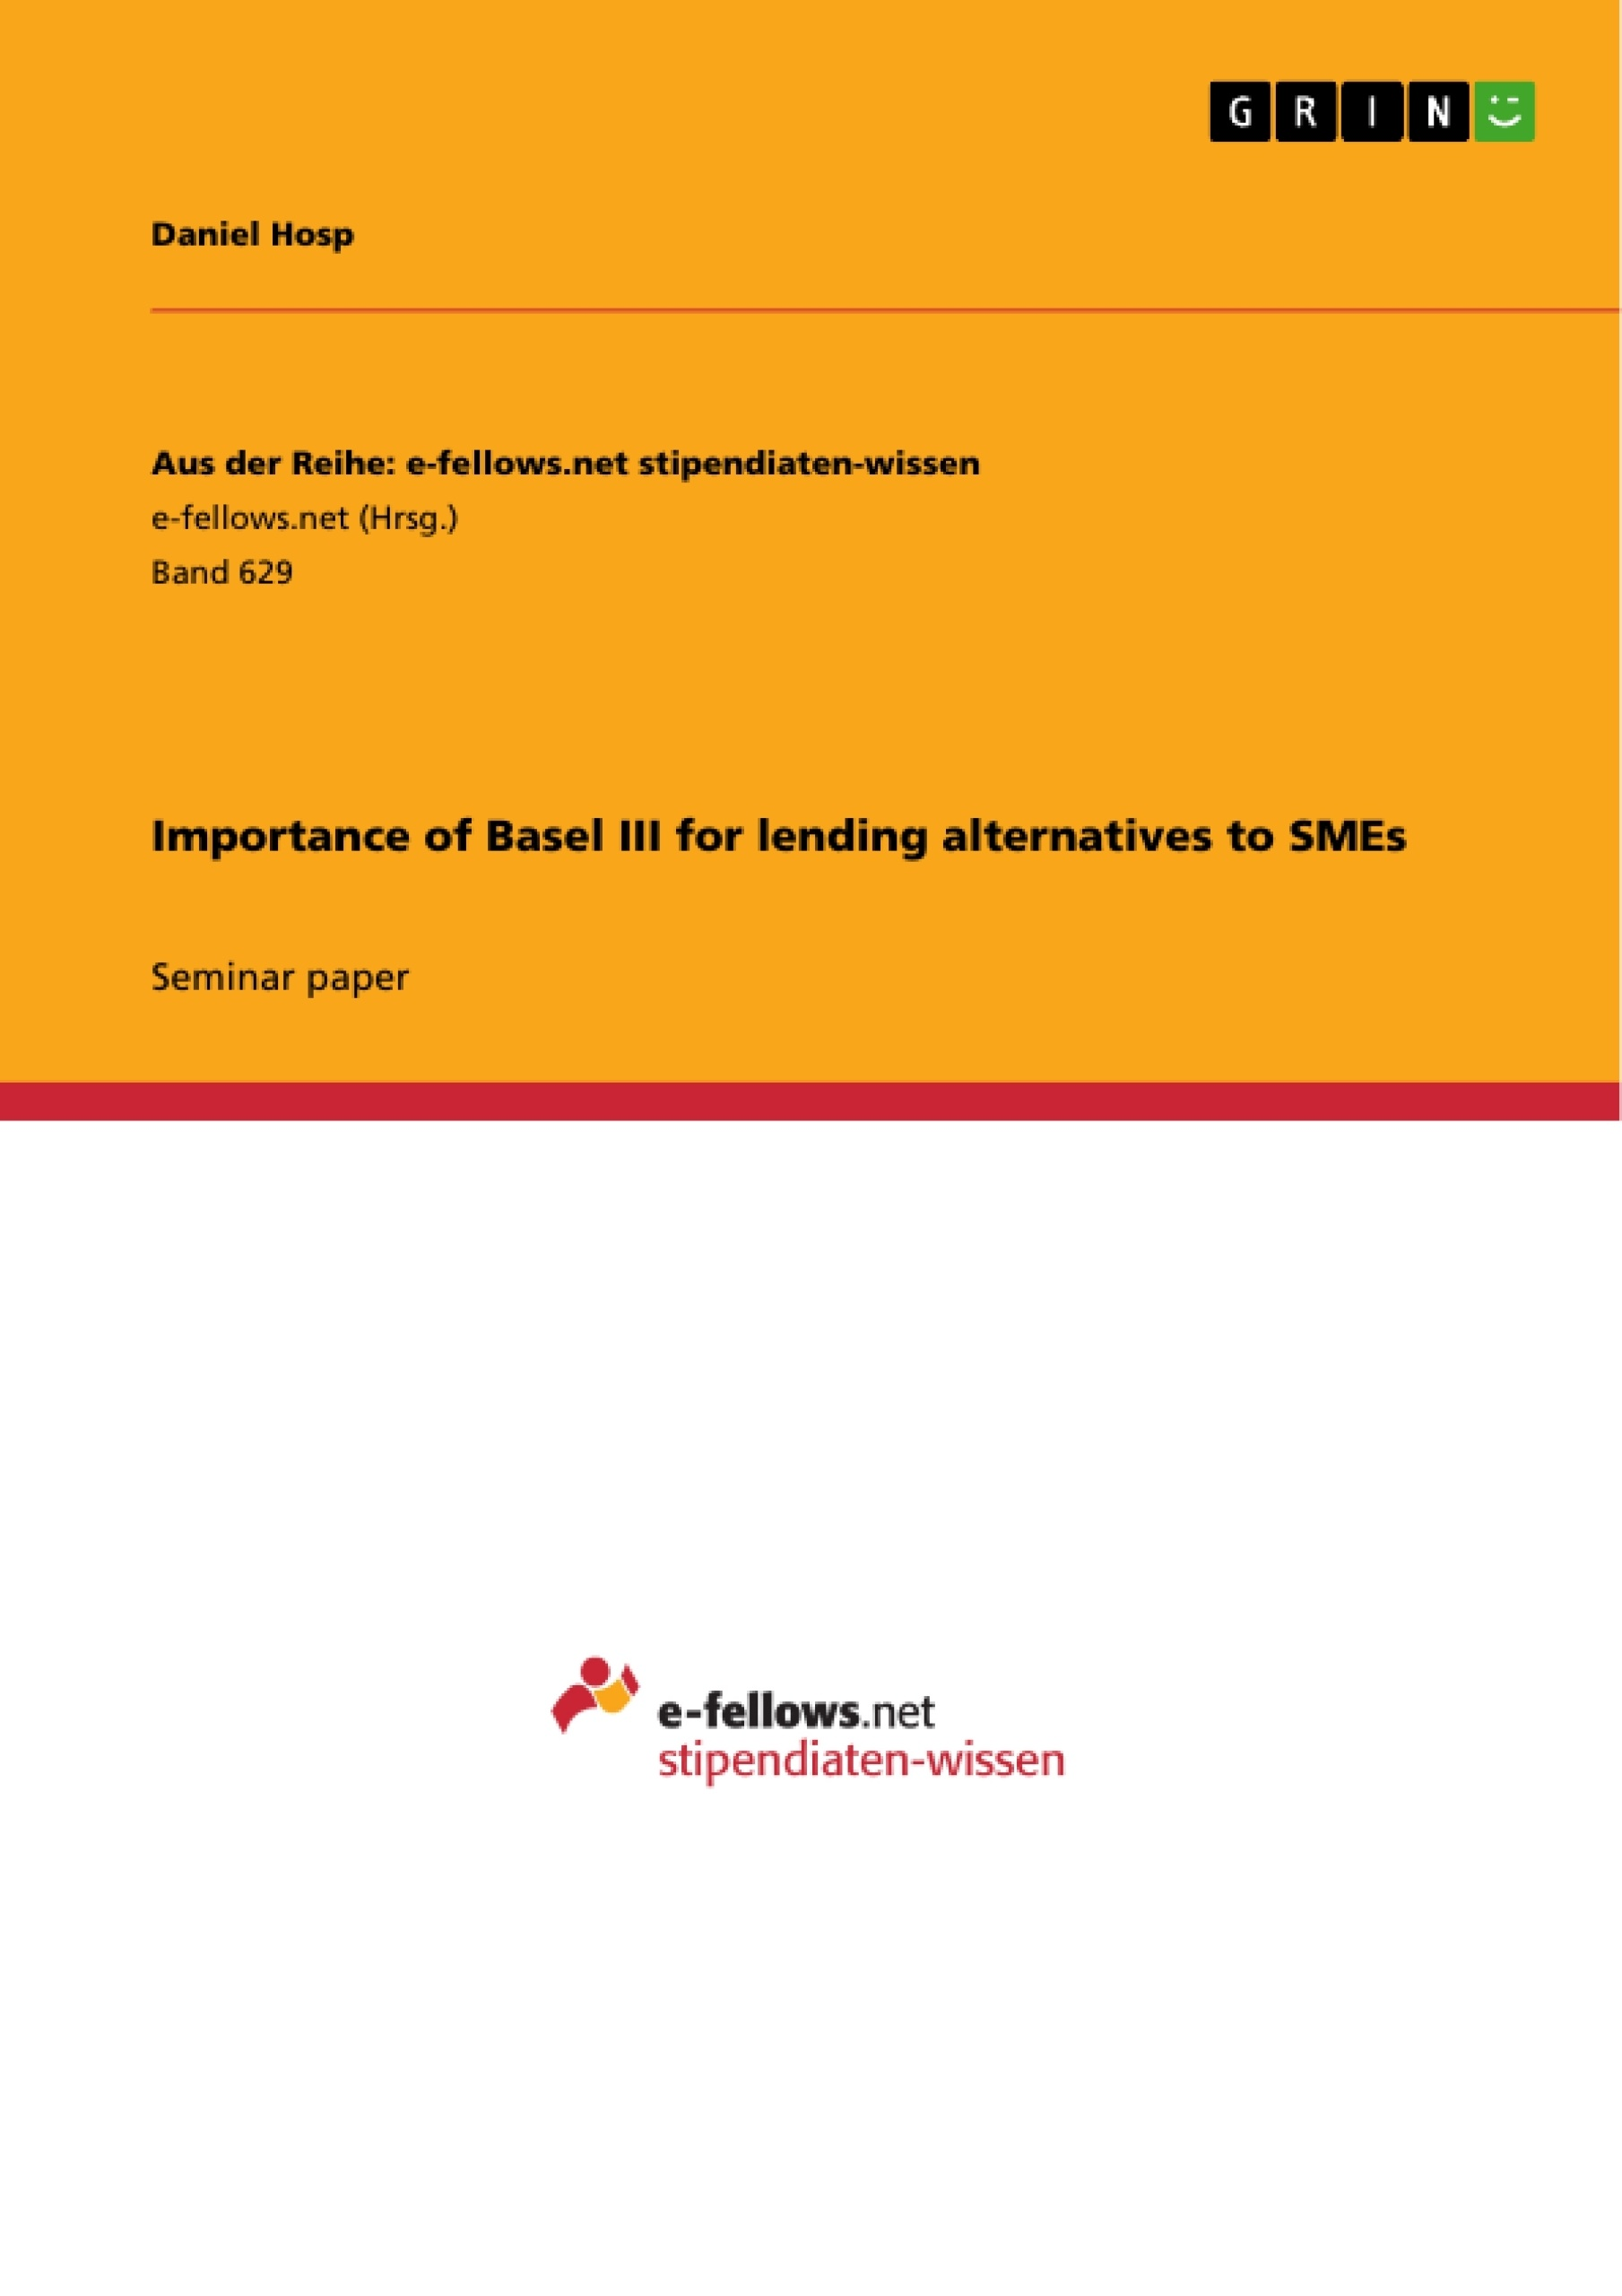 Title: Importance of Basel III for lending alternatives to SMEs